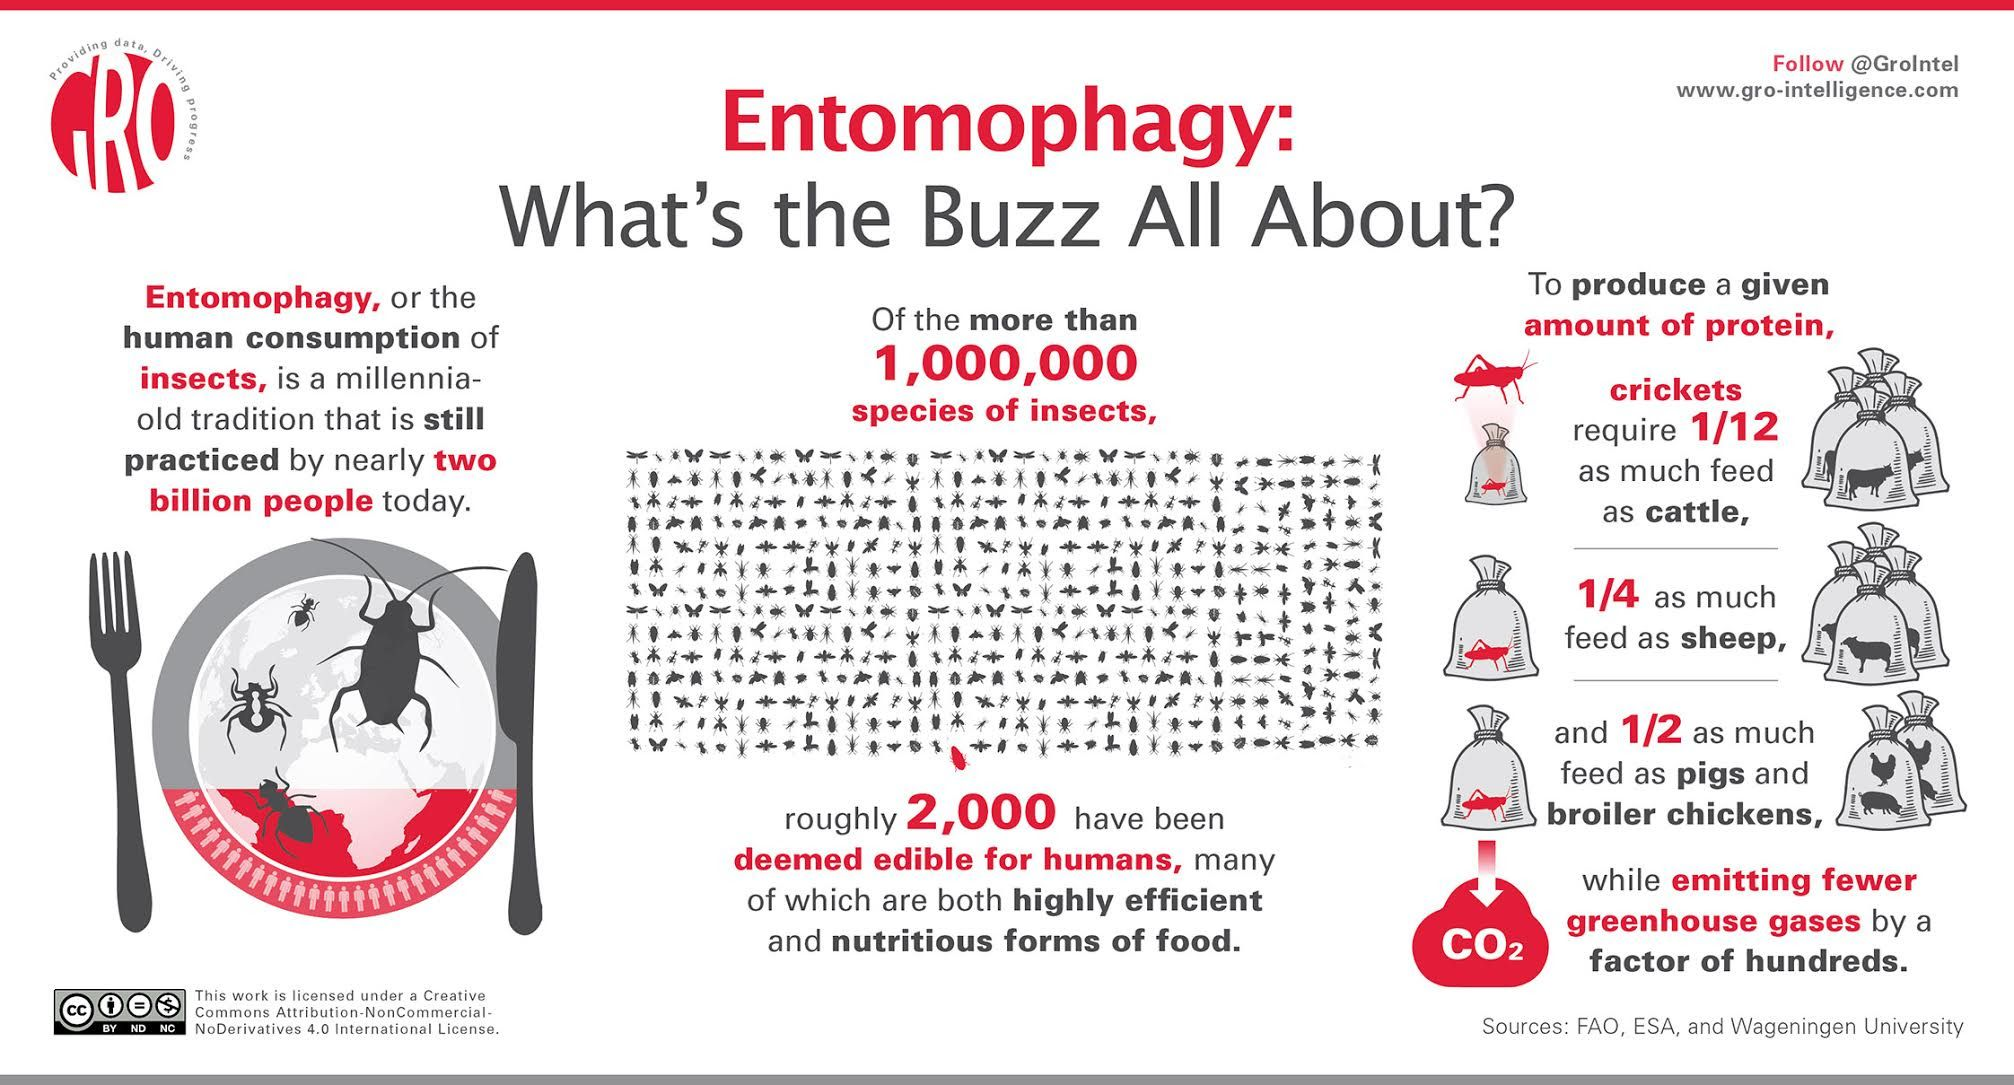 Entomophagy: What's the Buzz All About? - Gro Intelligence